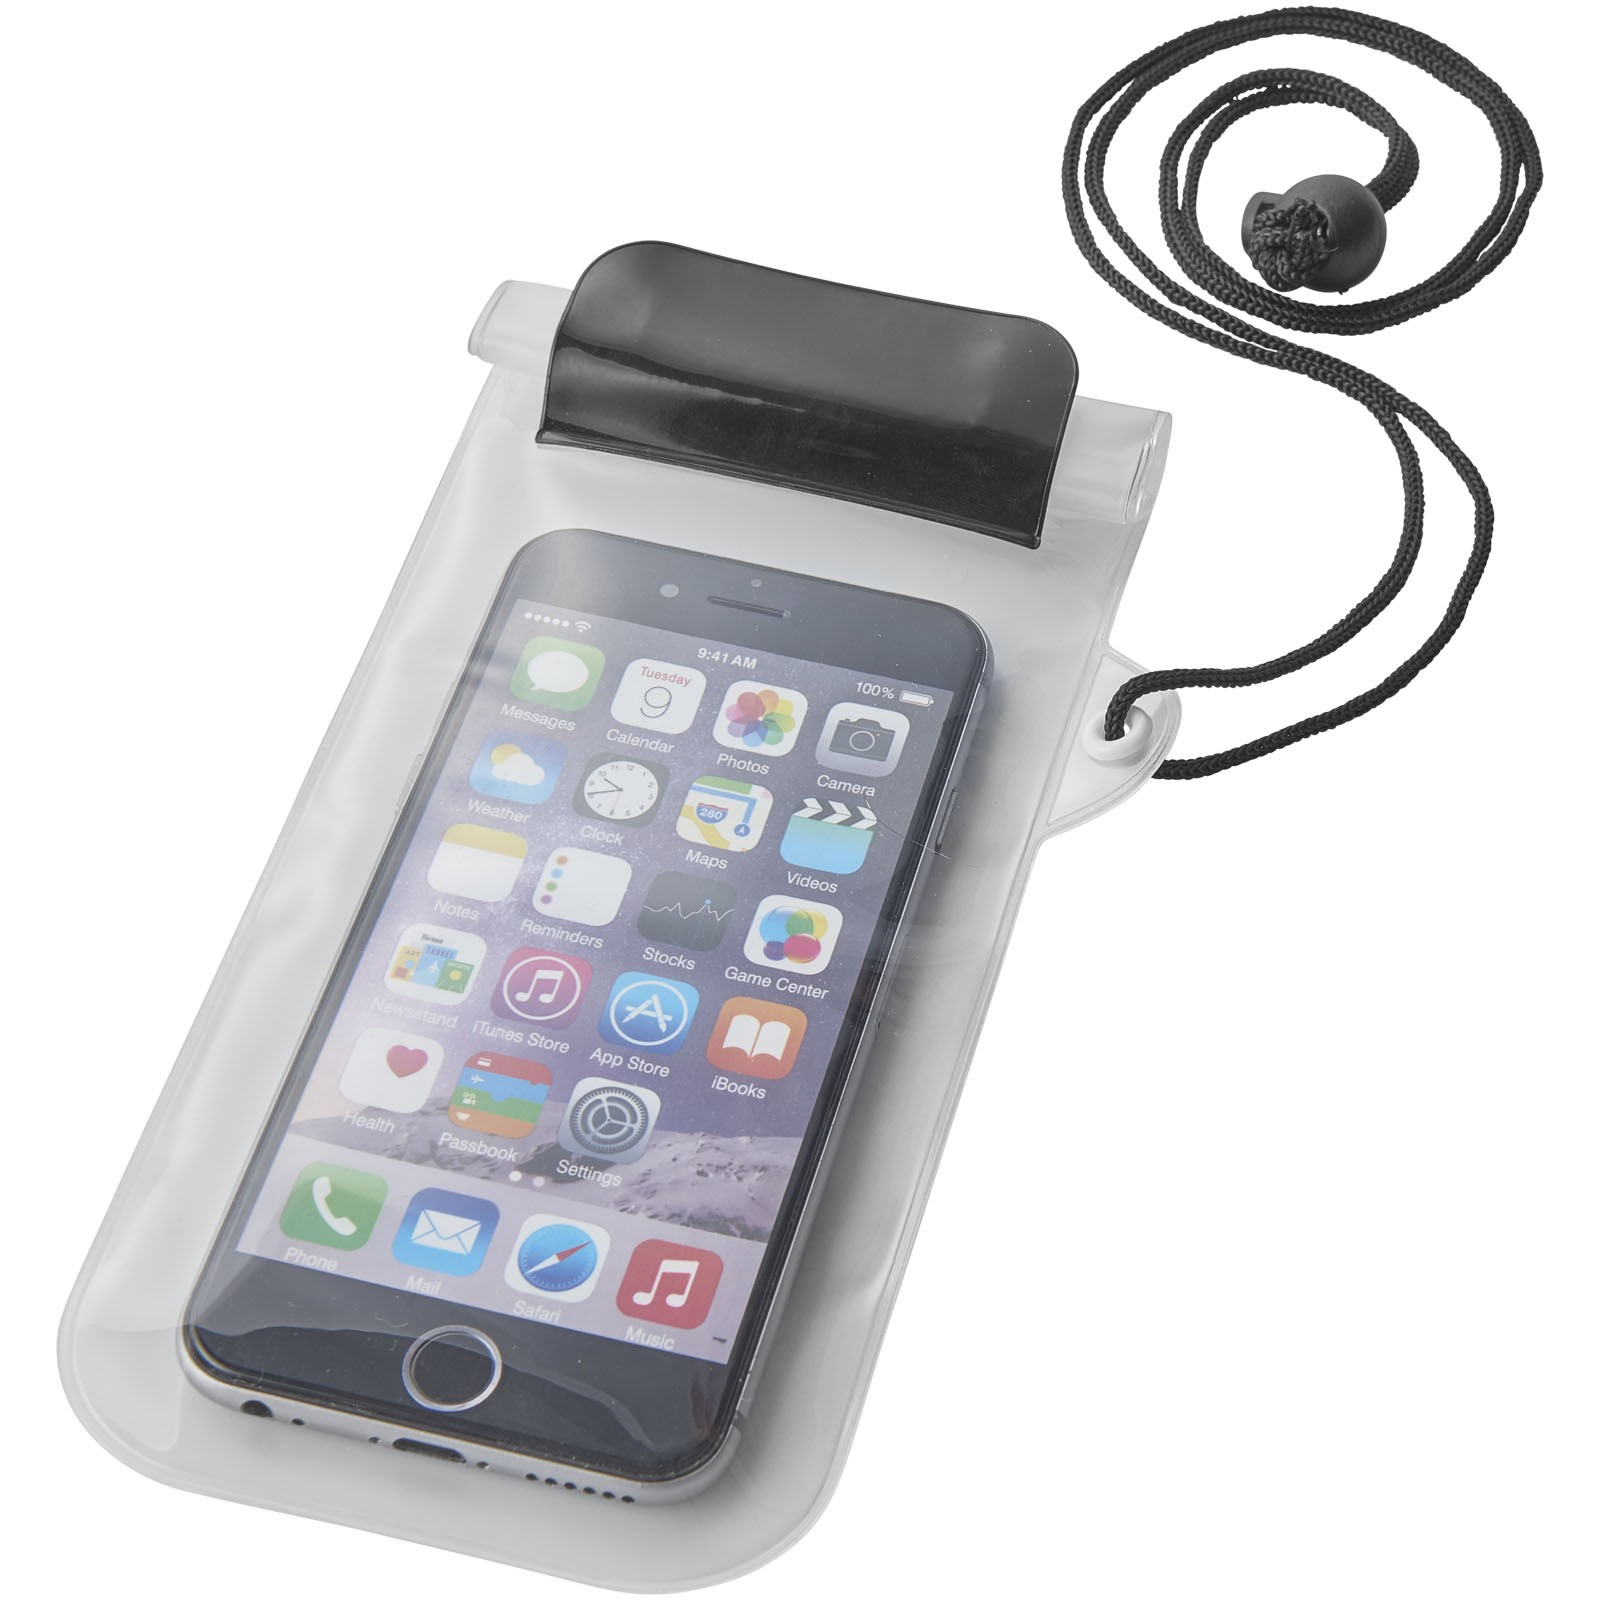 Mambo waterproof smartphone storage pouch - Solid black